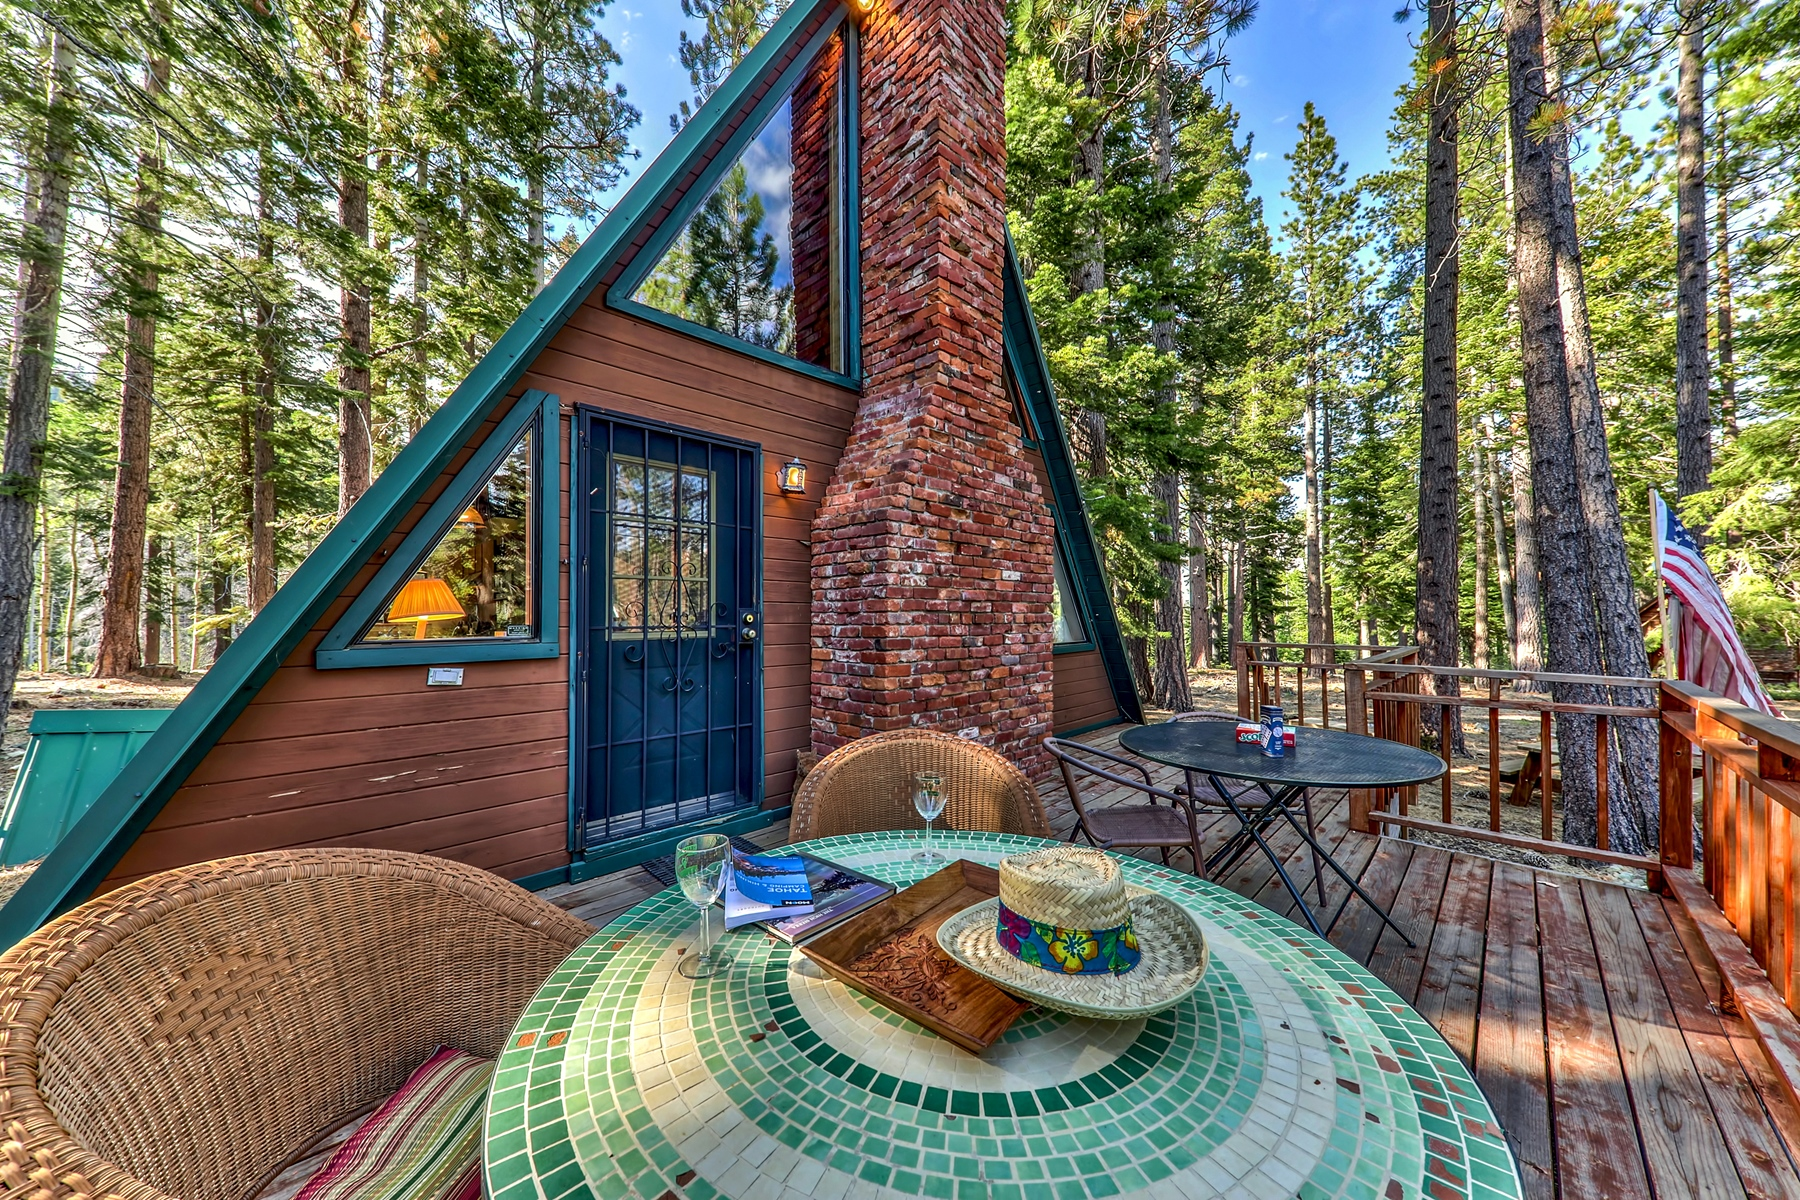 Single Family Homes for Active at 891 Mattole Rd, South Lake Tahoe, CA 96150 891 Mattole Rd South Lake Tahoe, California 96150 United States